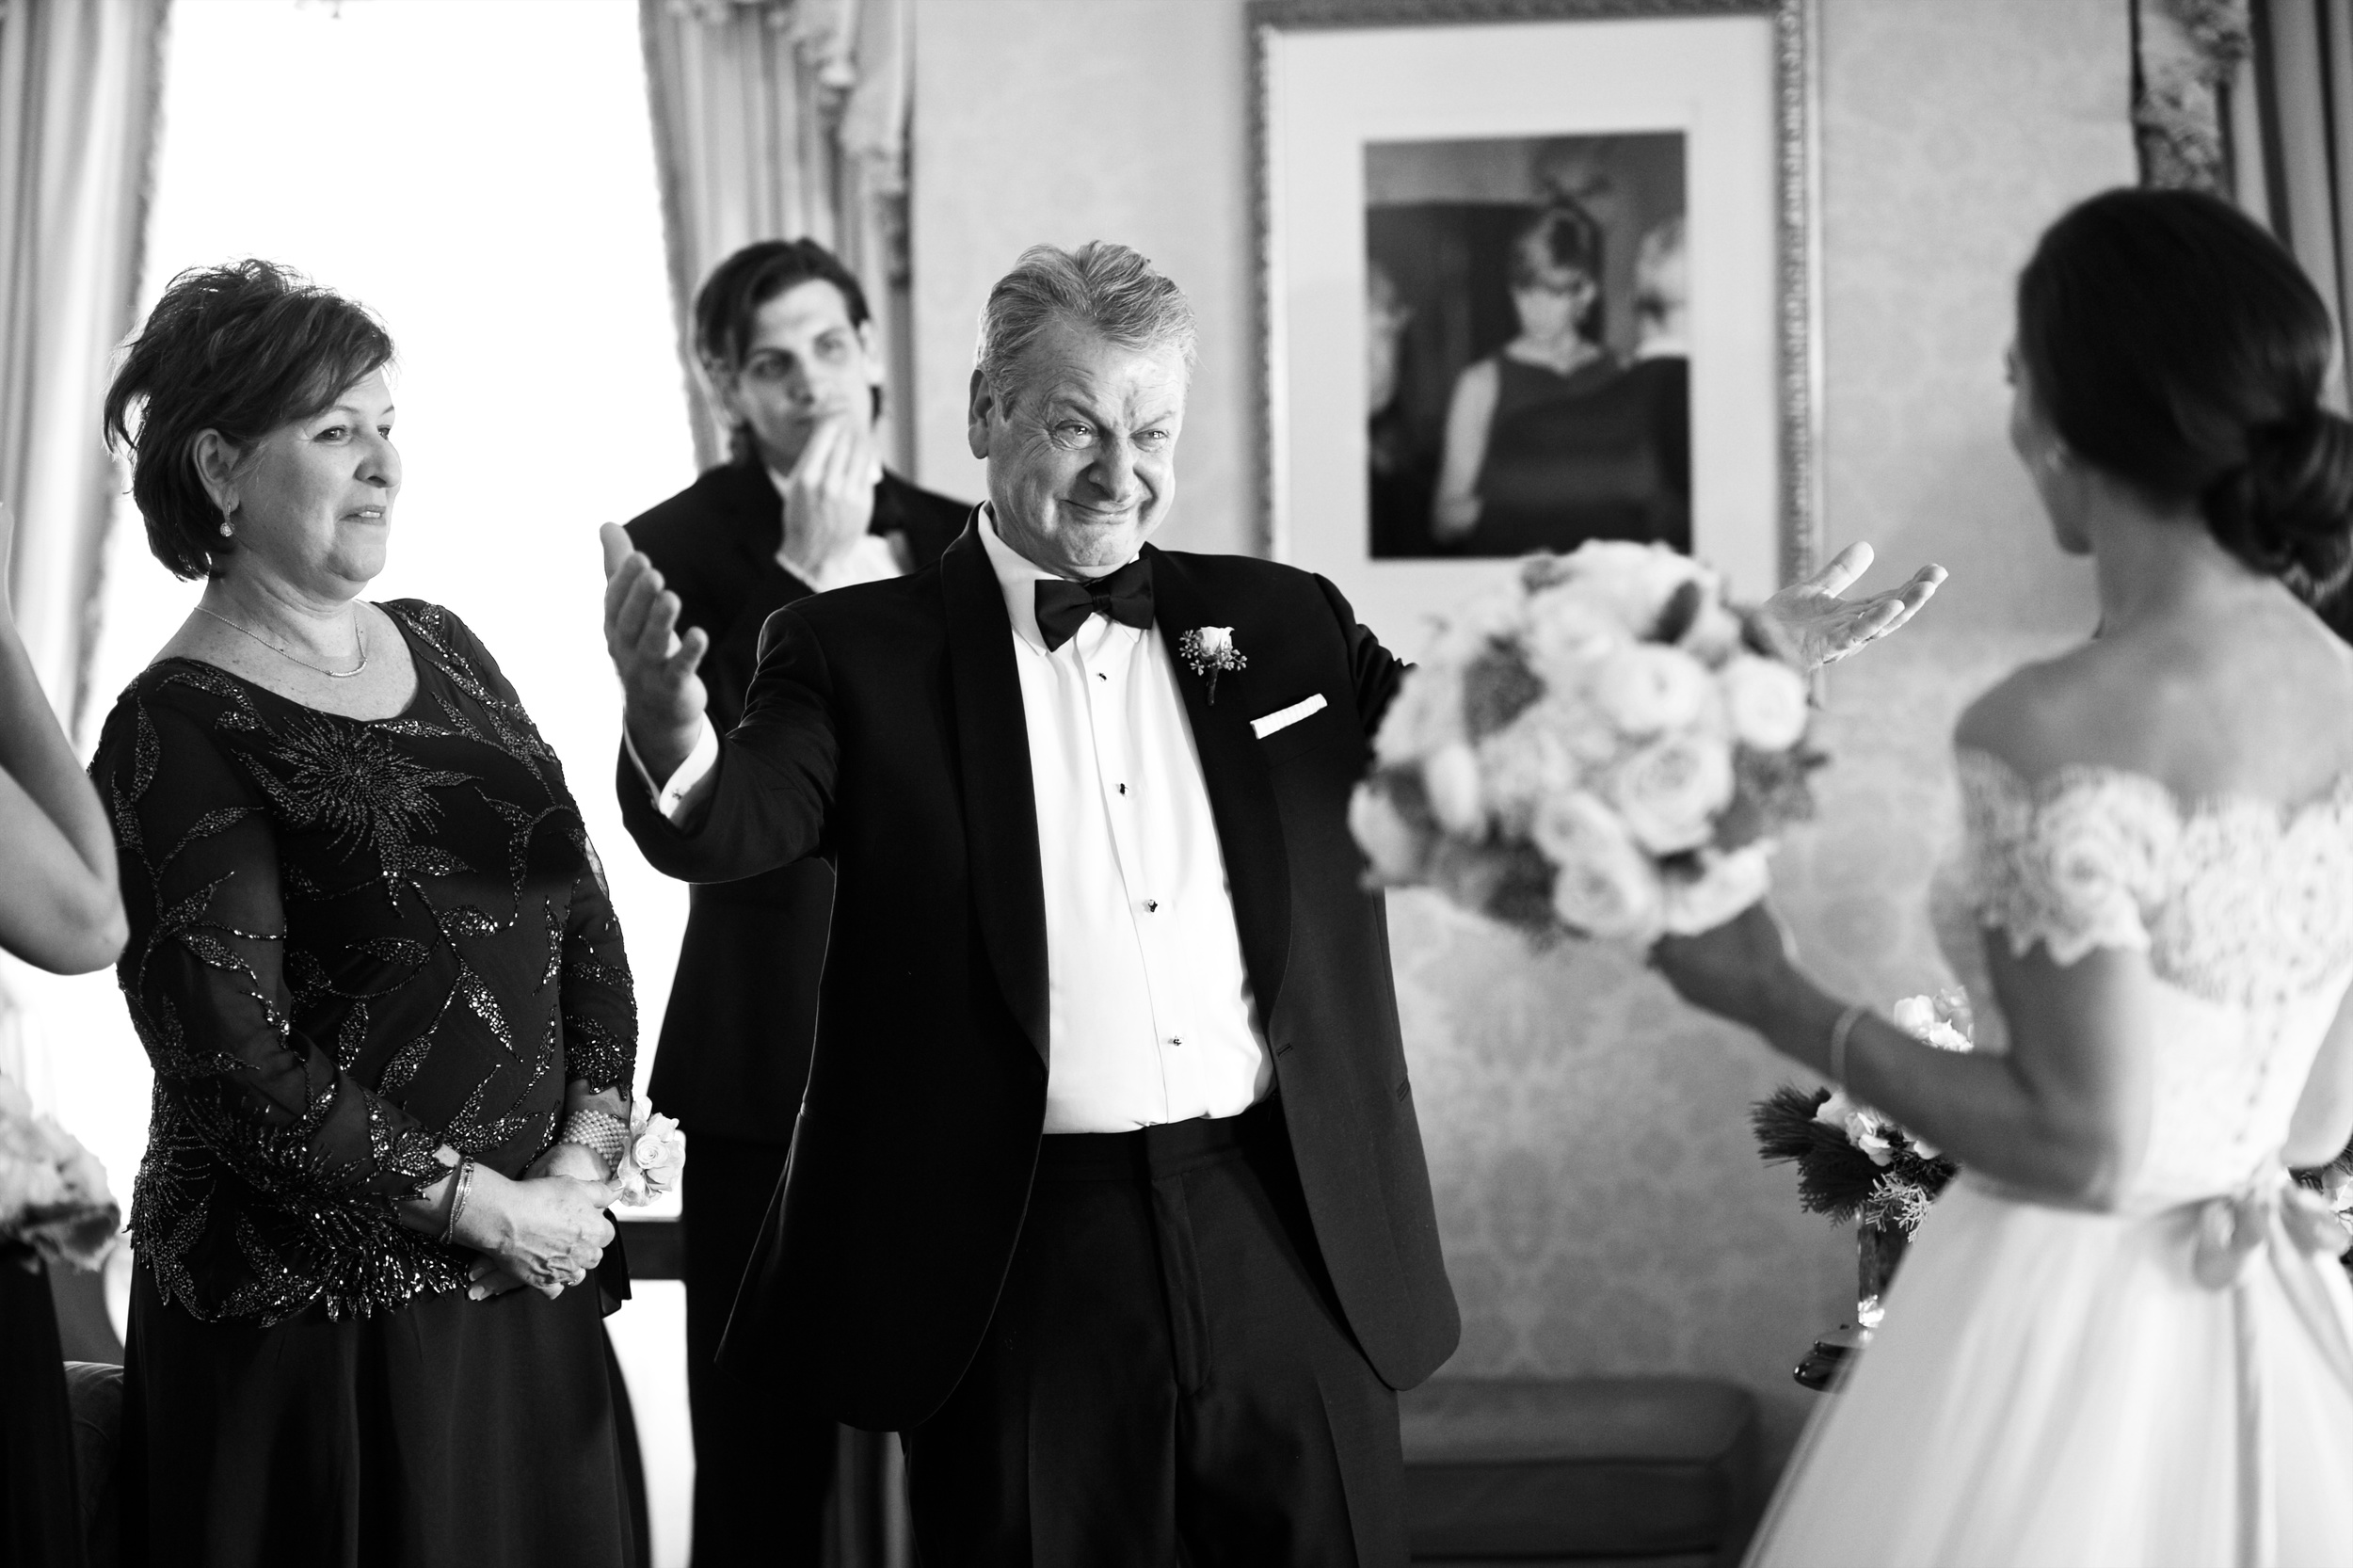 When her dad saw her for the first time in her wedding dress, there was not a dry eye in that room!